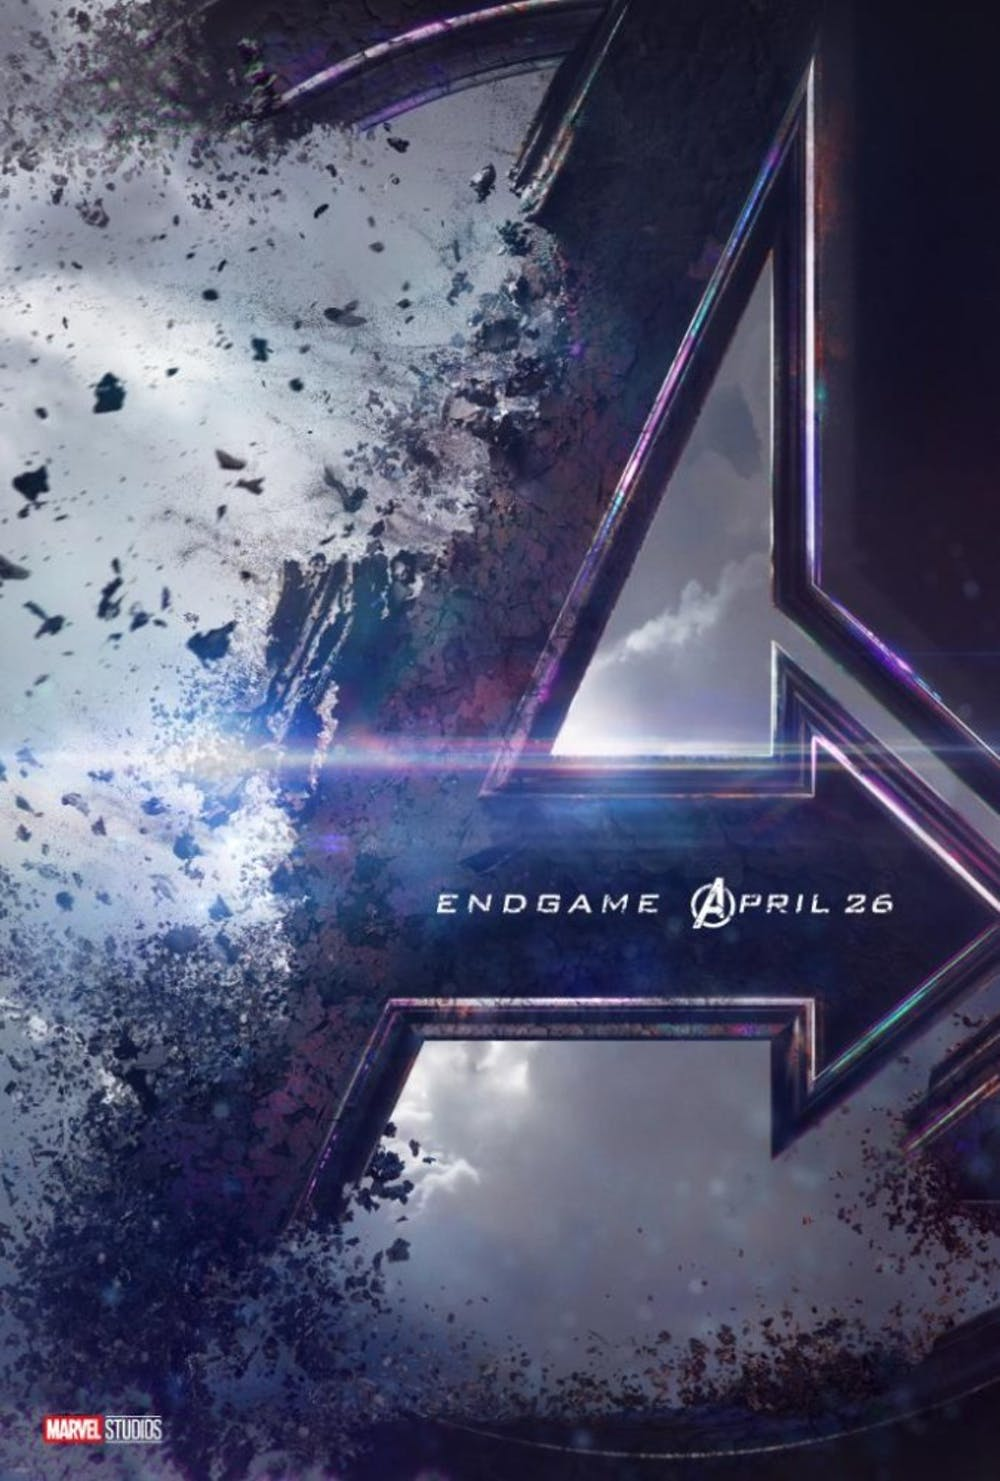 Twitter Reactions: The Avengers four trailer was released along with the title of the movie